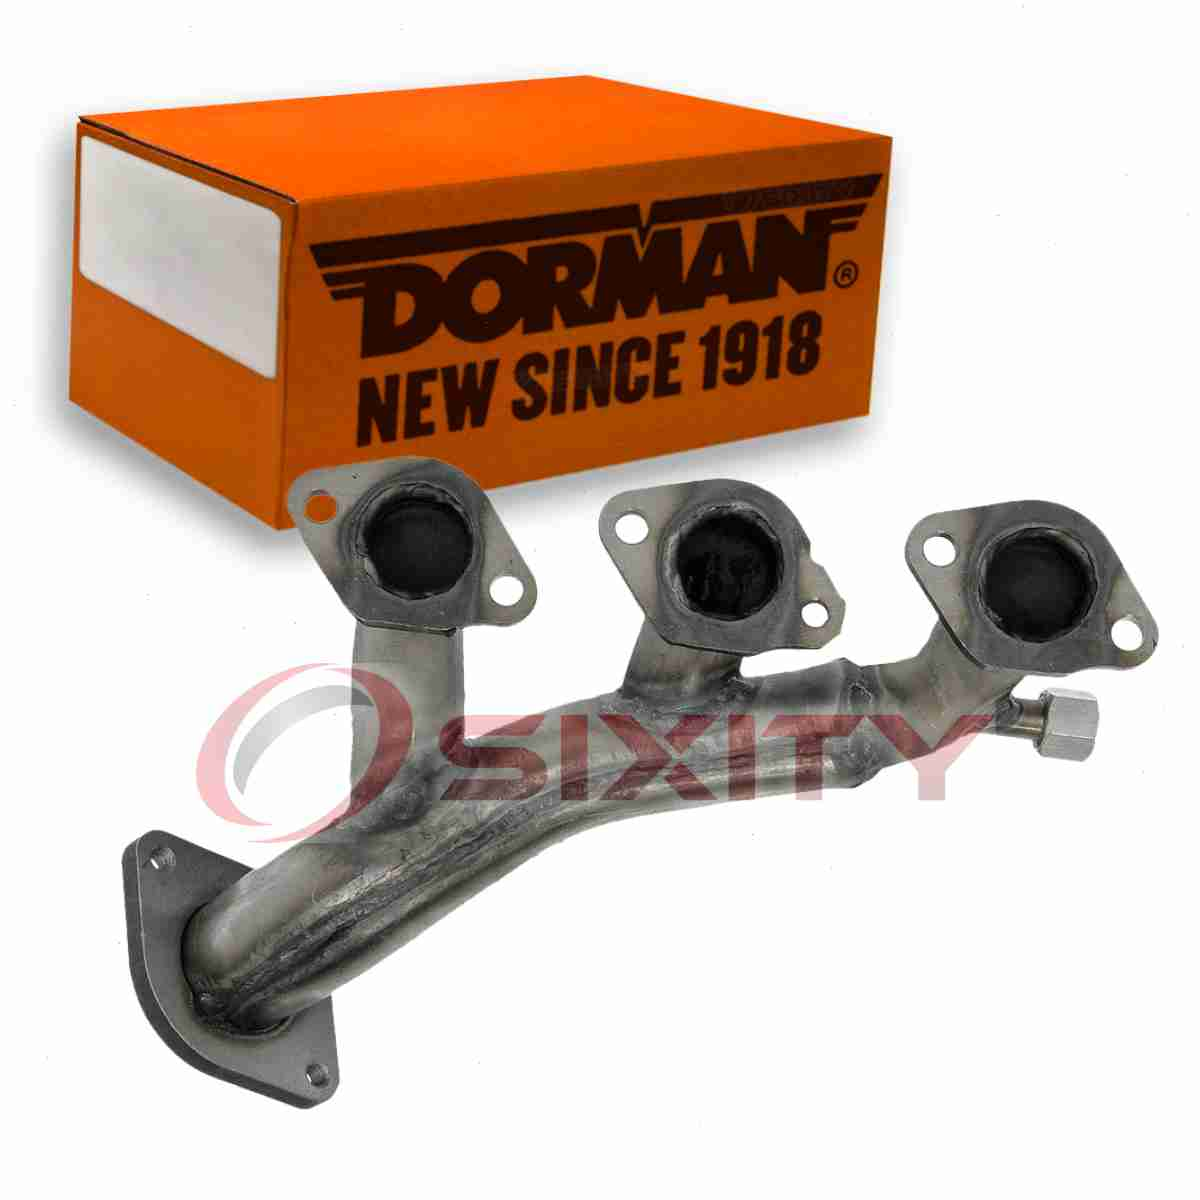 K148 Fits 1999-03 TOYOTA SOLARA COUPE 3.0L ENGINE /& TRANS MOUNT for AUTO TRANS